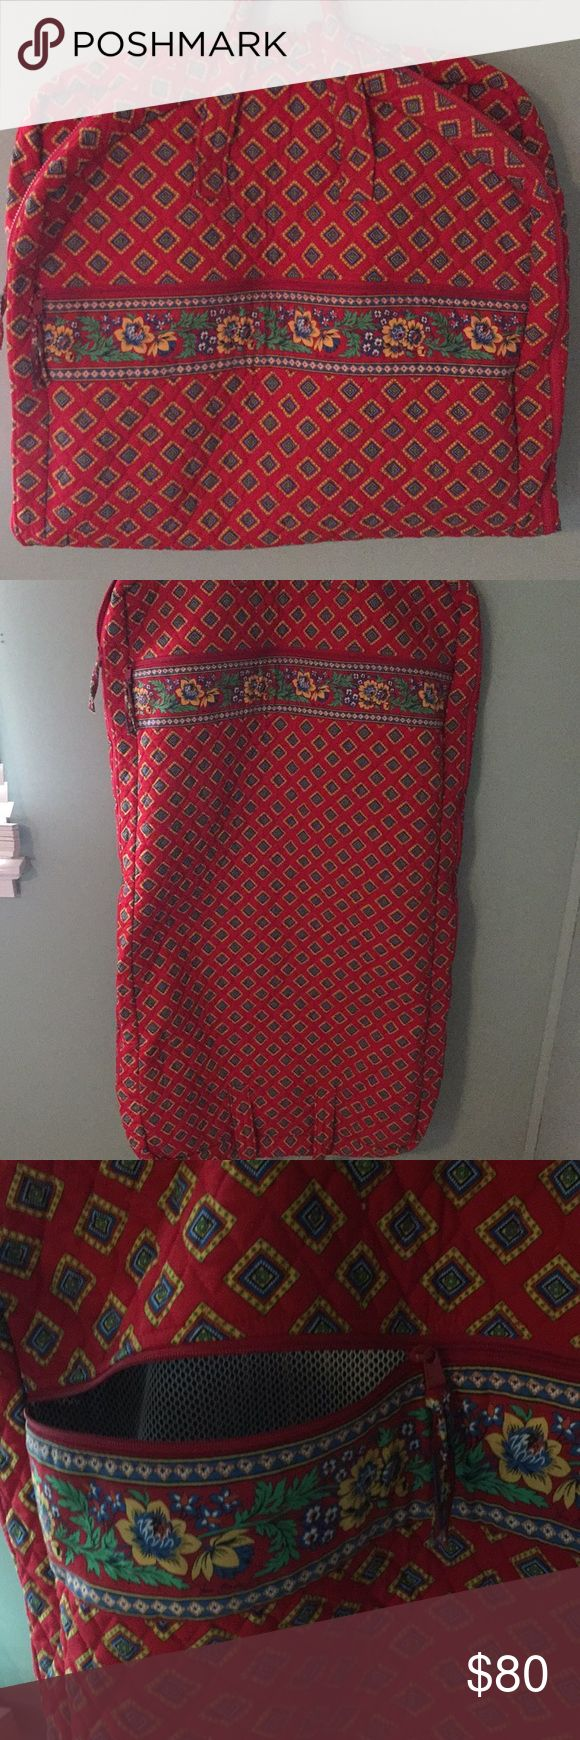 Vera Bradley garment bag Vera Bradley garment bag in Villa Red. Exterior zipper pocket. Folds in half for easy carrying with two handles. Perfect condition. Vera Bradley Bags